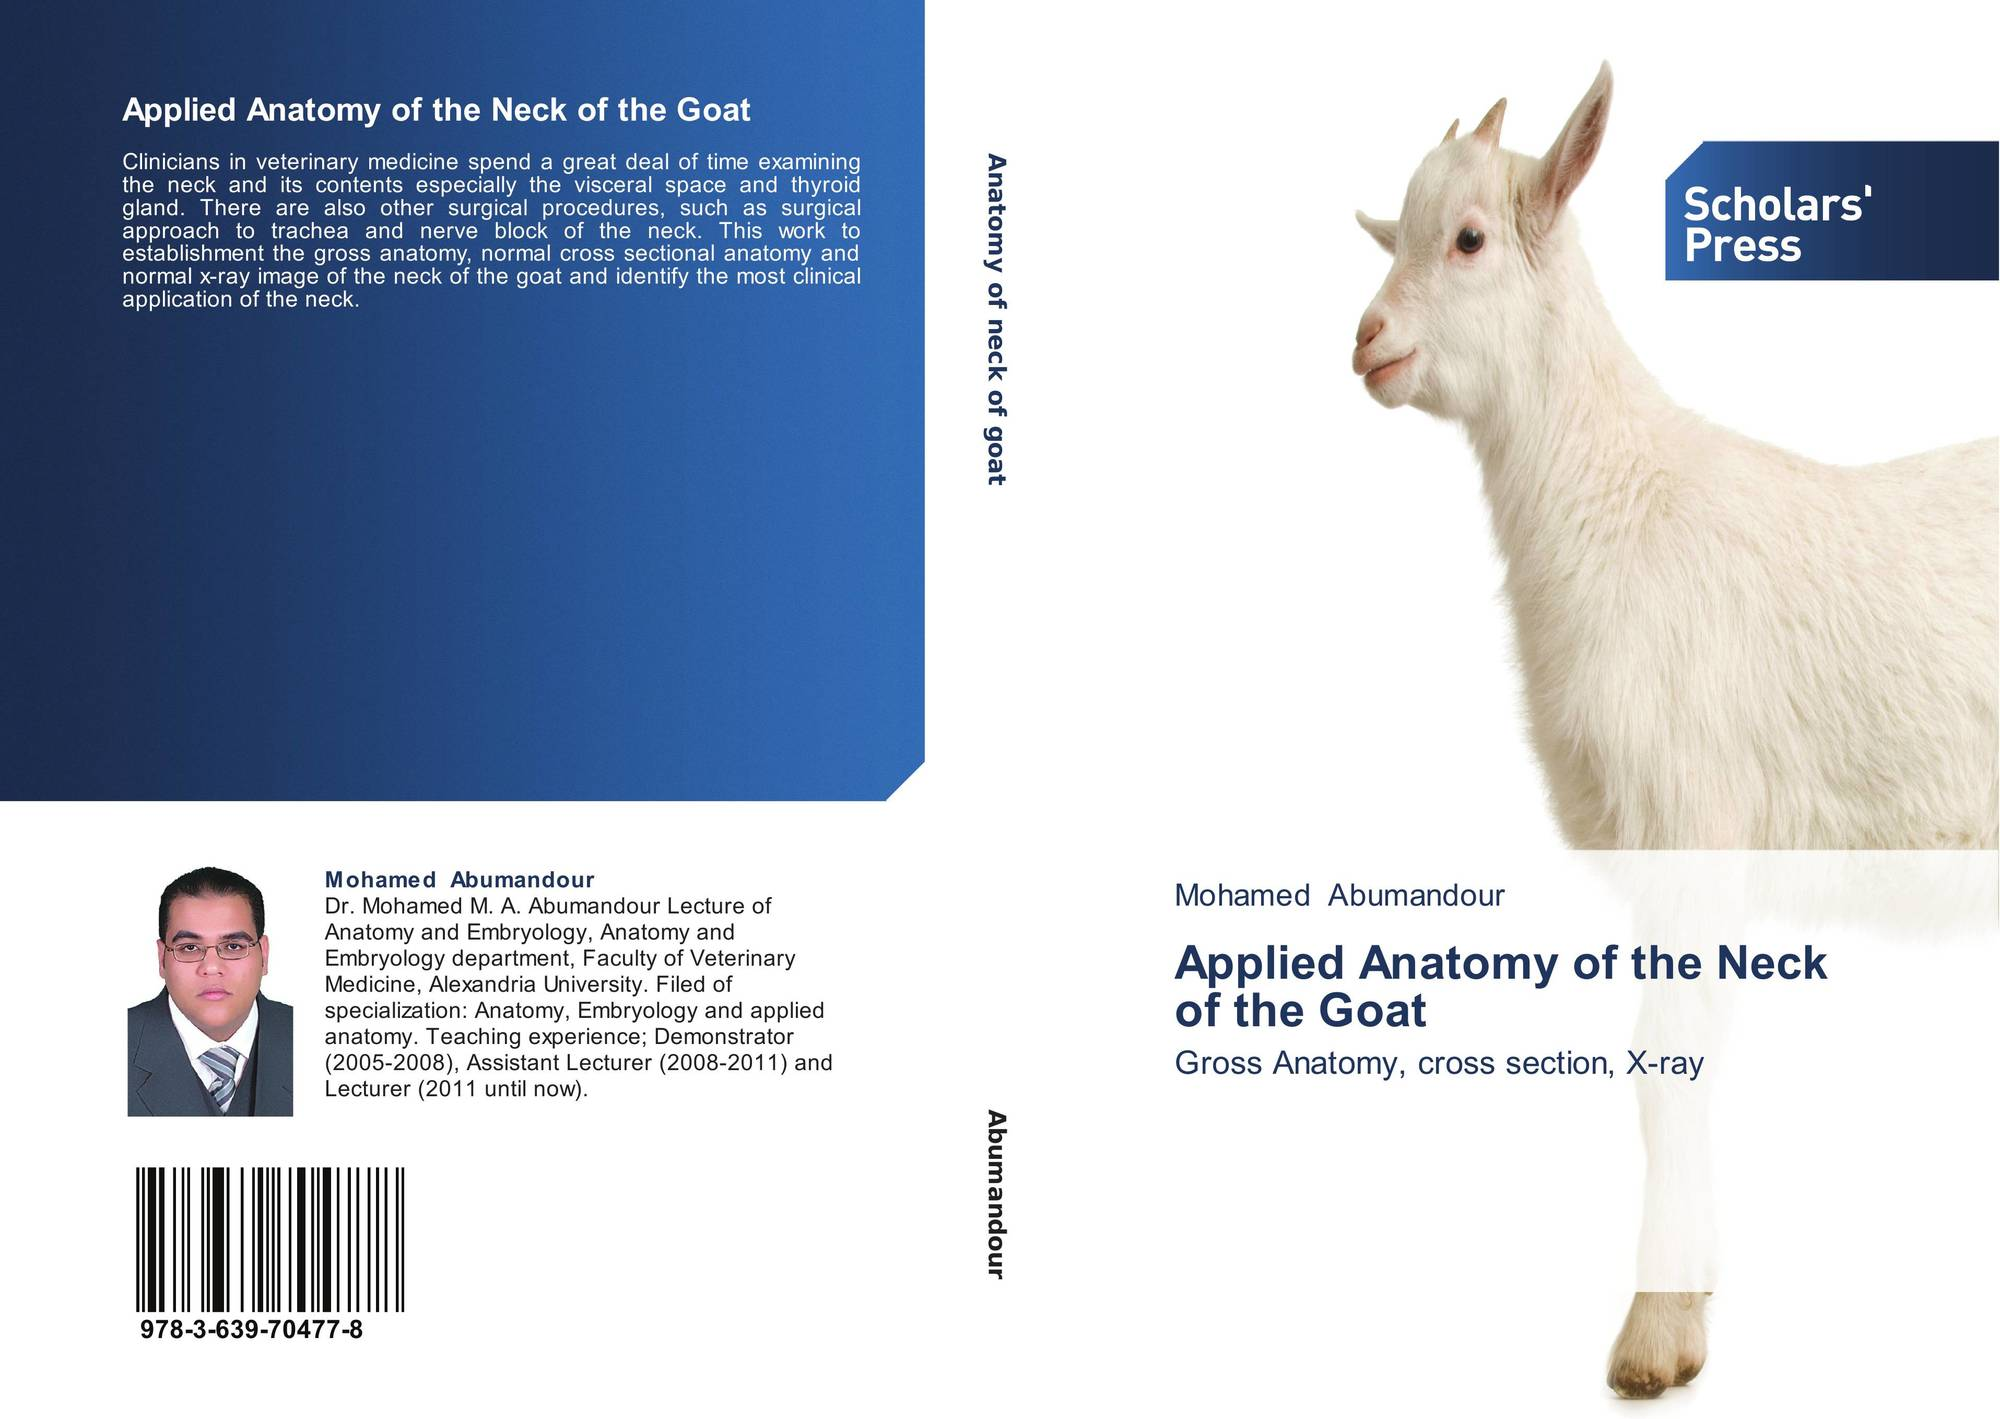 Applied Anatomy of the Neck of the Goat, 978-3-639-70477-8 ...